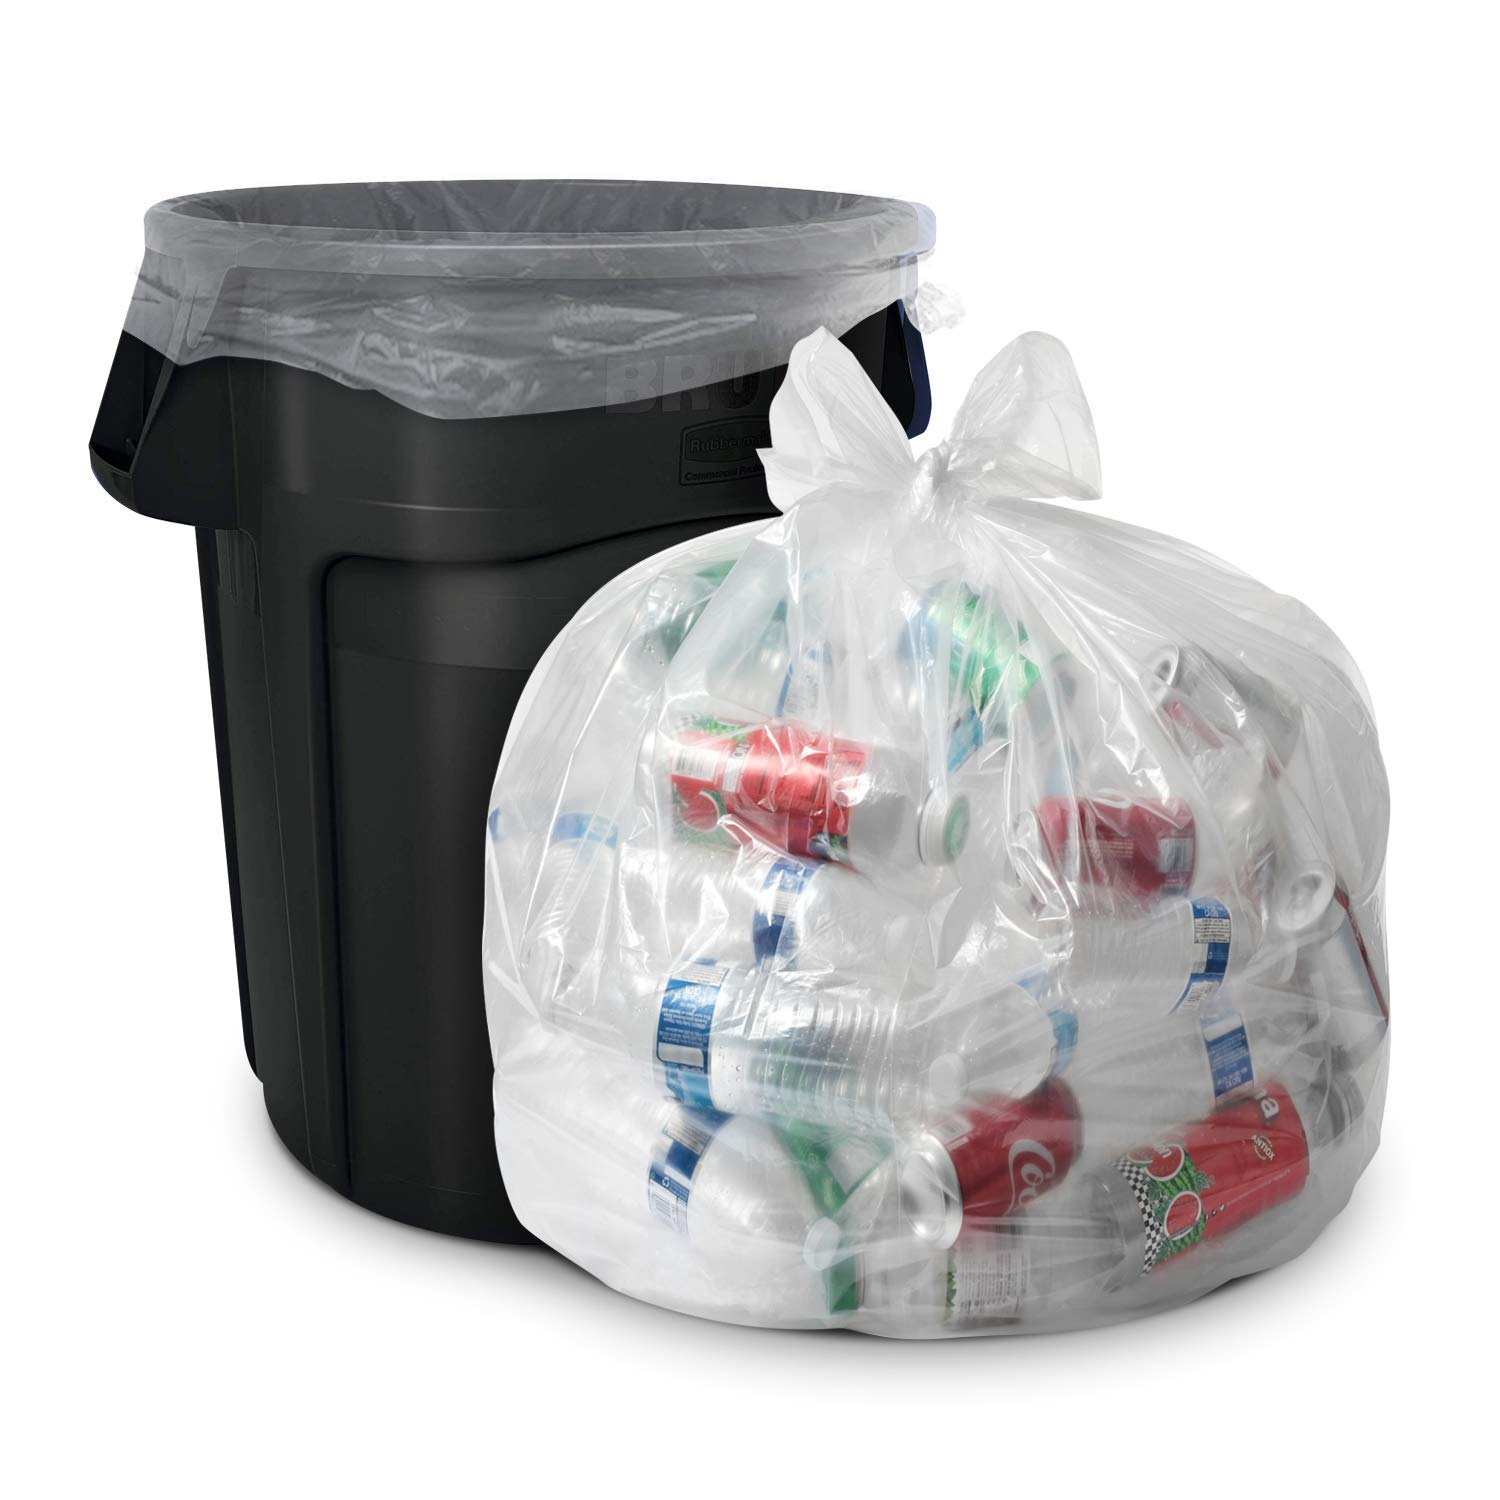 Aluf Plastics 39 Gallon Clear Trash Bags - (Huge 100 Pack) - 33